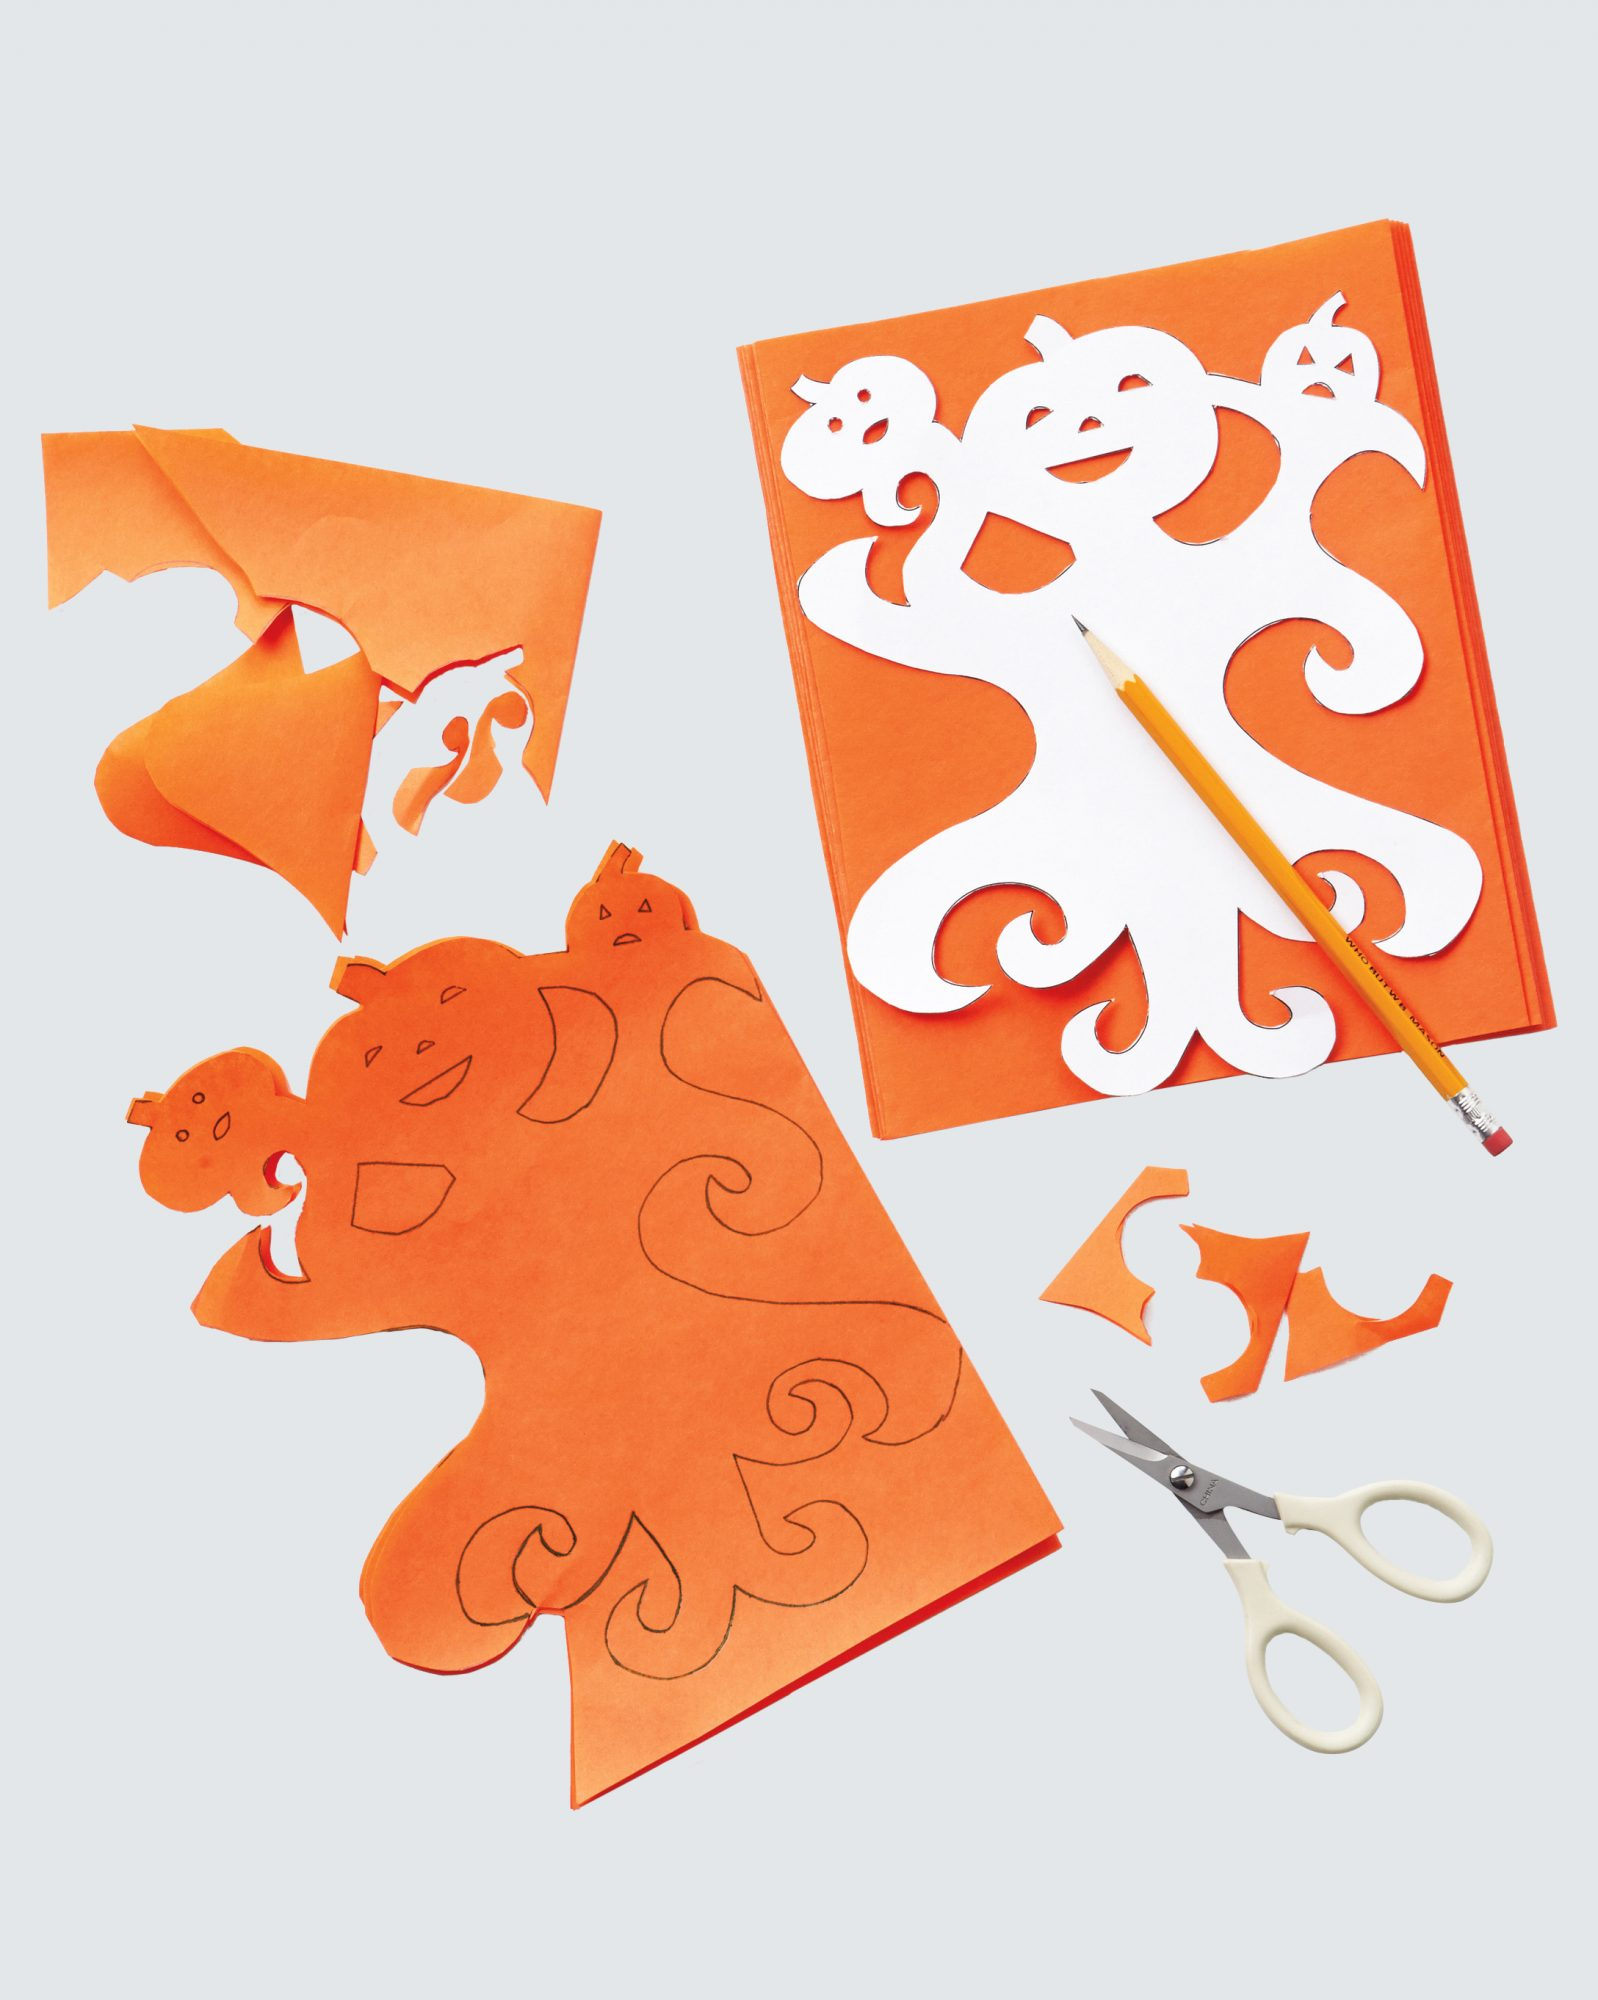 halloween paper doll cut out of orange paper